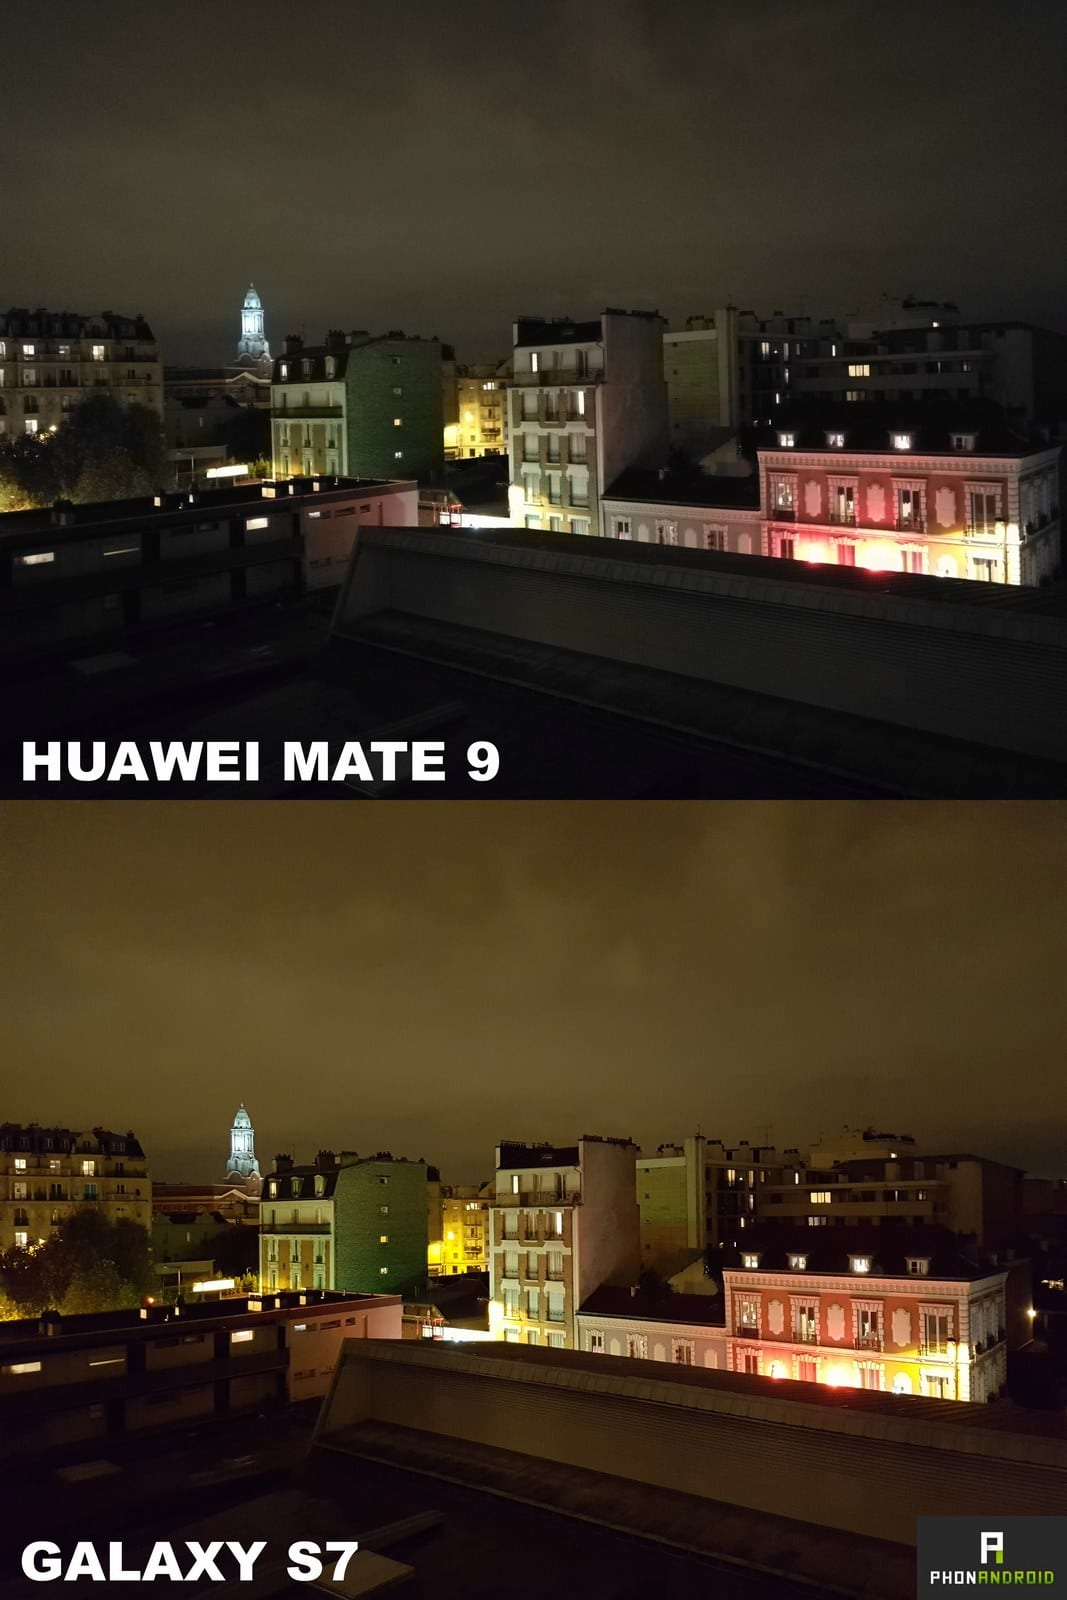 huawei mate 9 galaxy s7 photo nuit